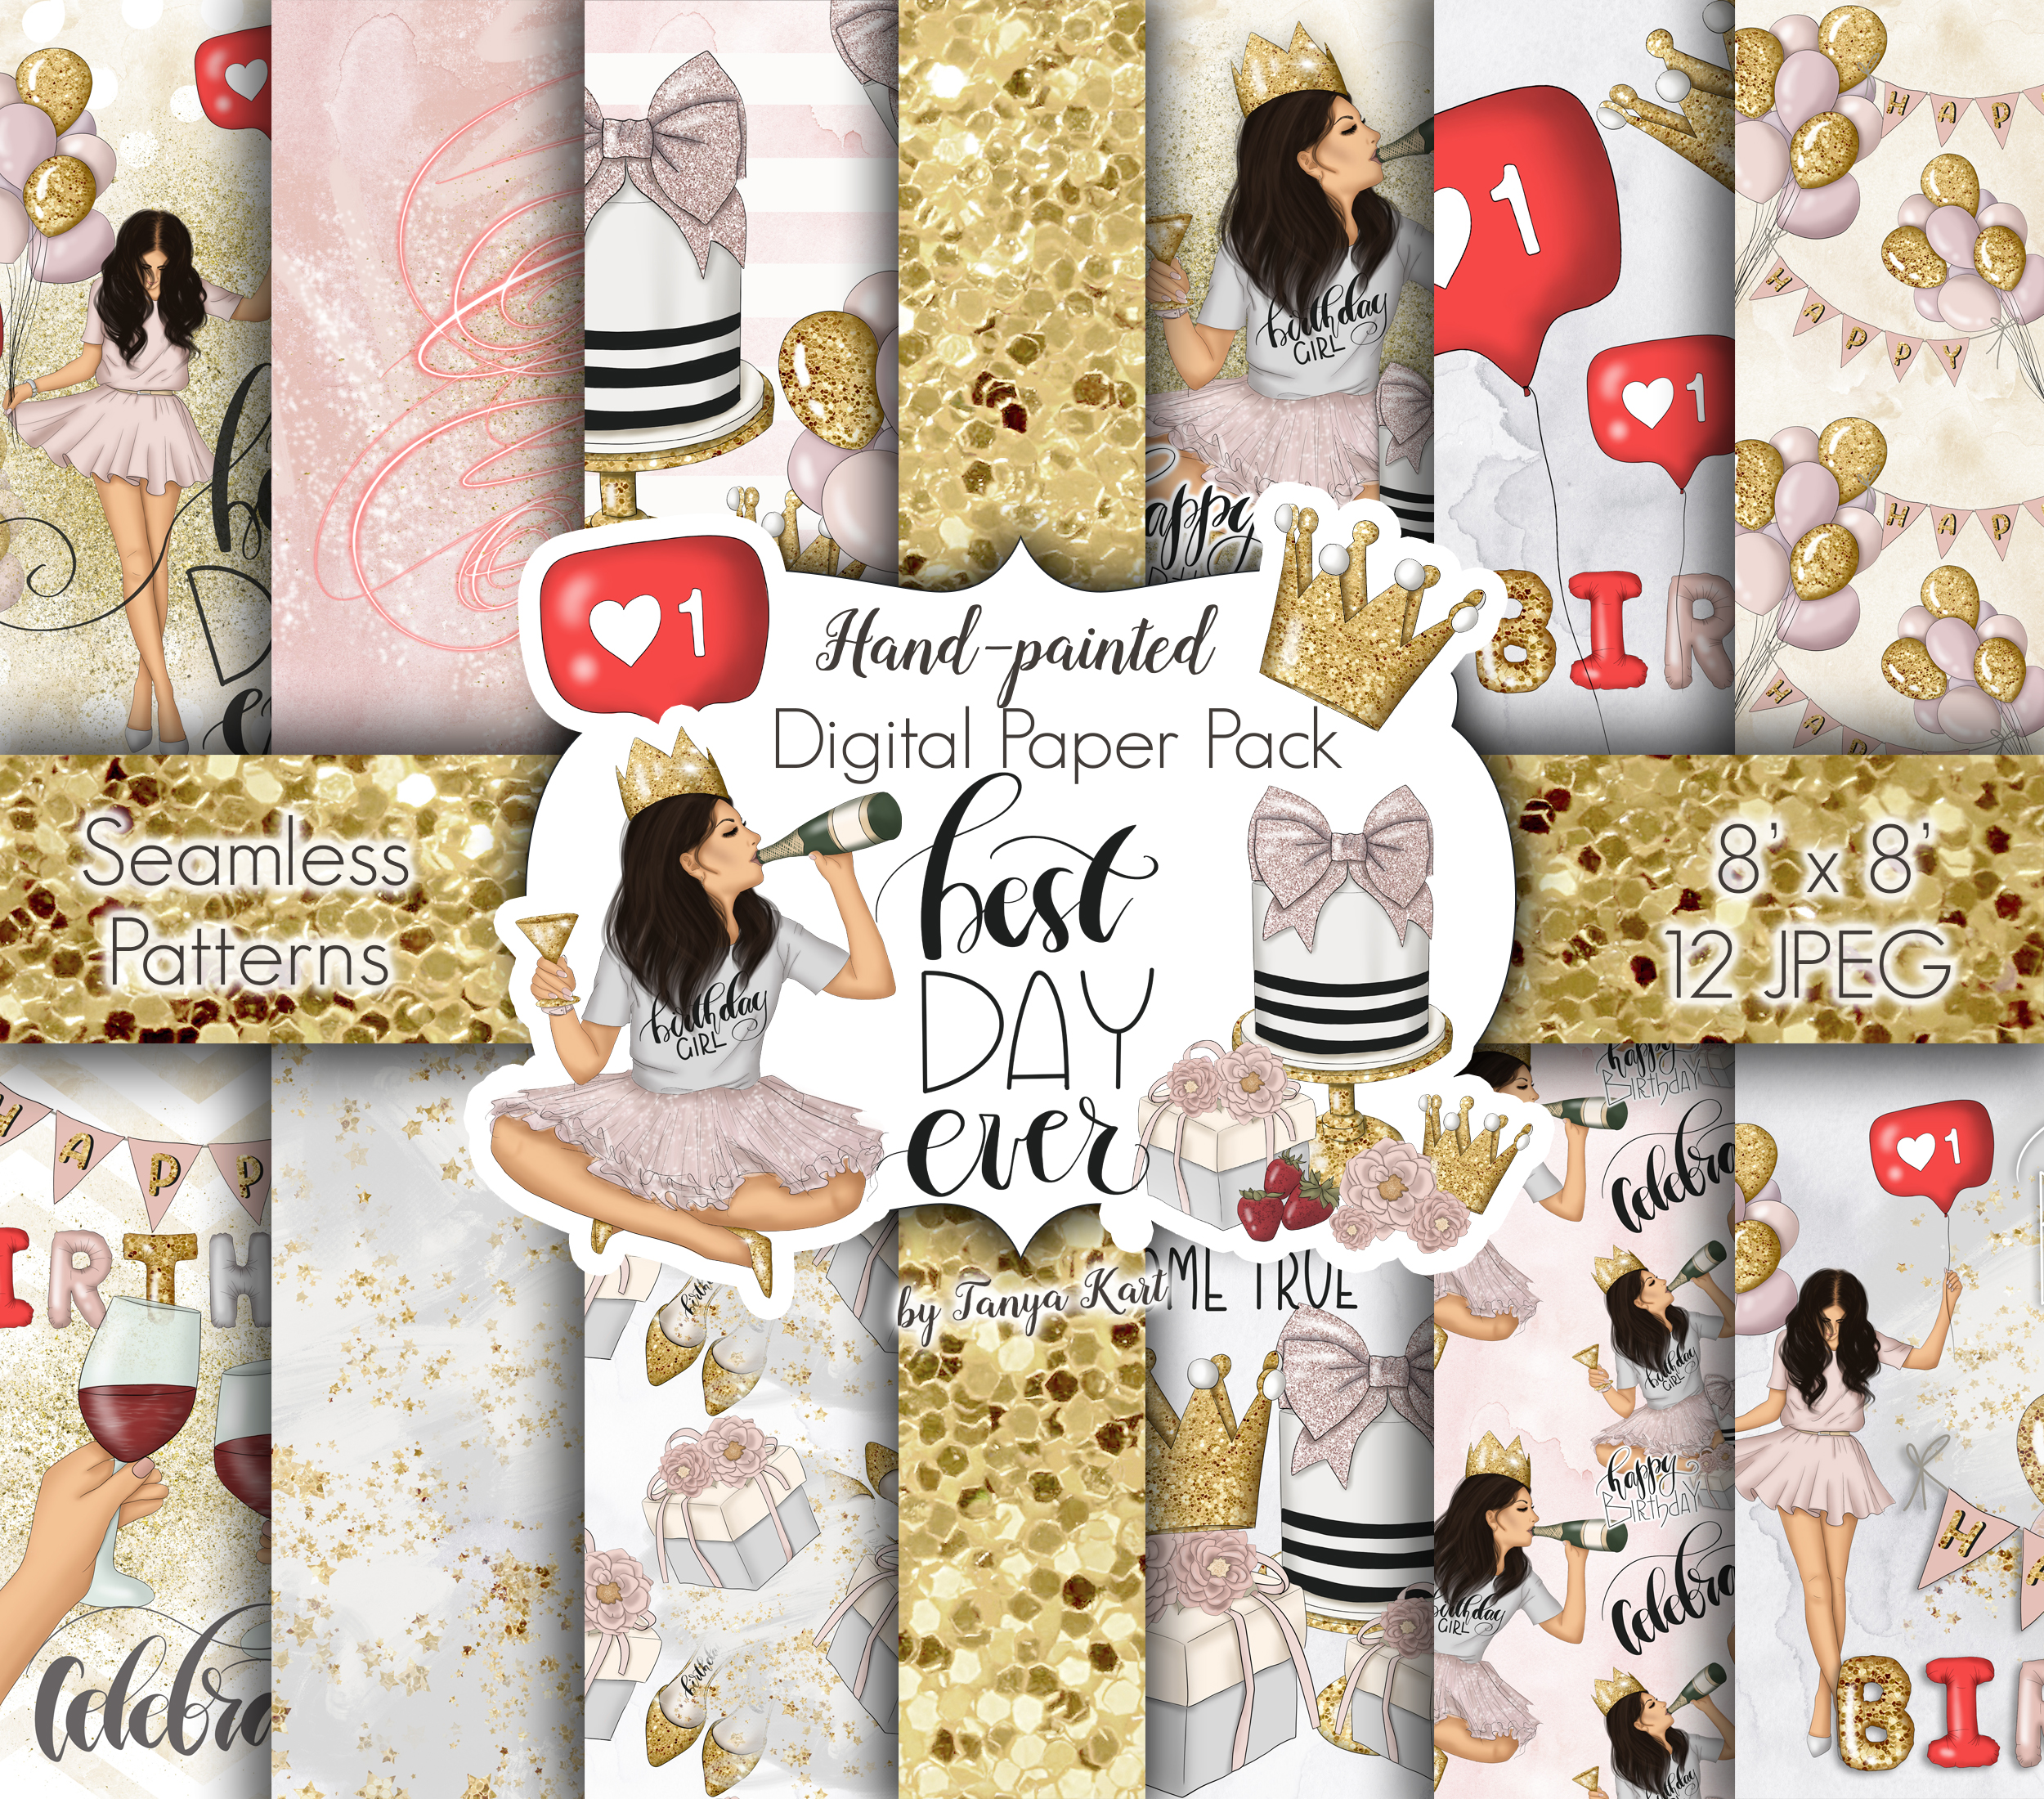 Best Day Ever Clipart Graphic Design example image 7